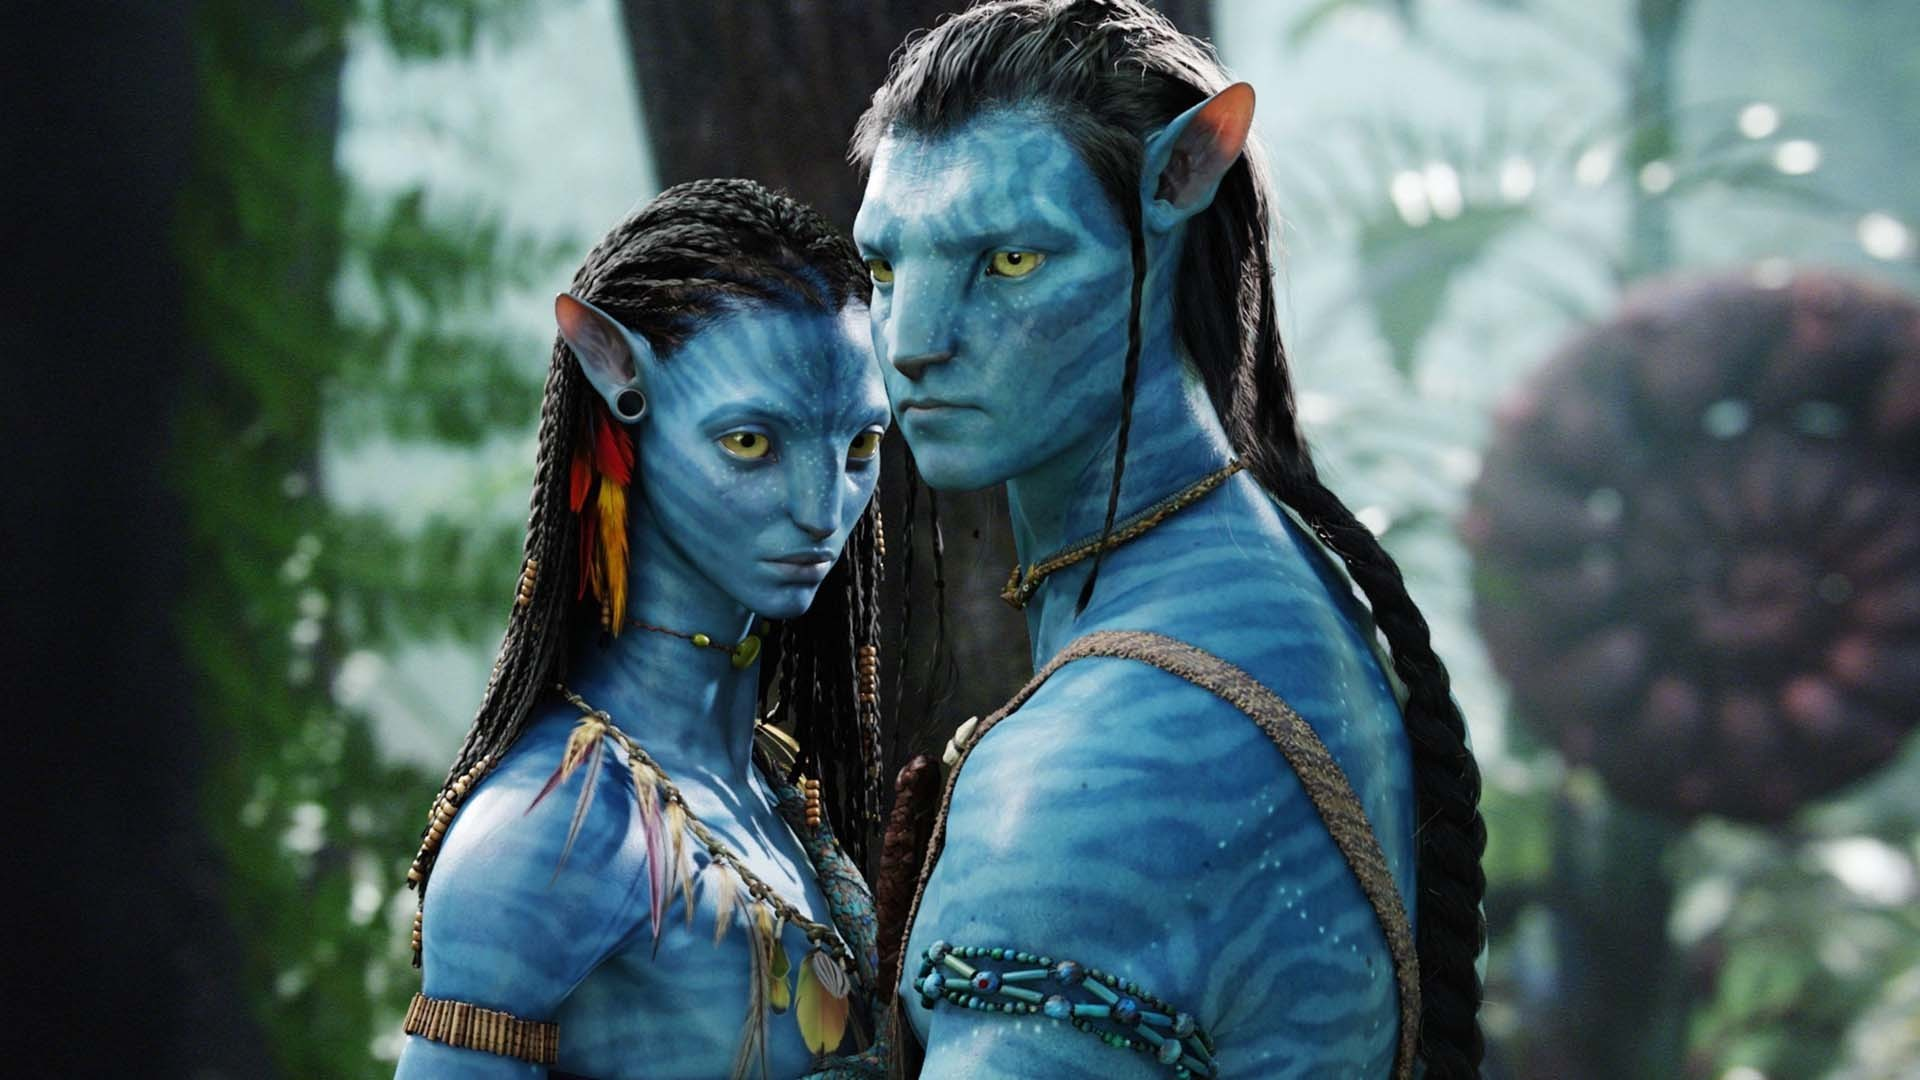 Avatar Hd Wallpaper Background Image 1920x1080 Id 674346 Wallpaper Abyss